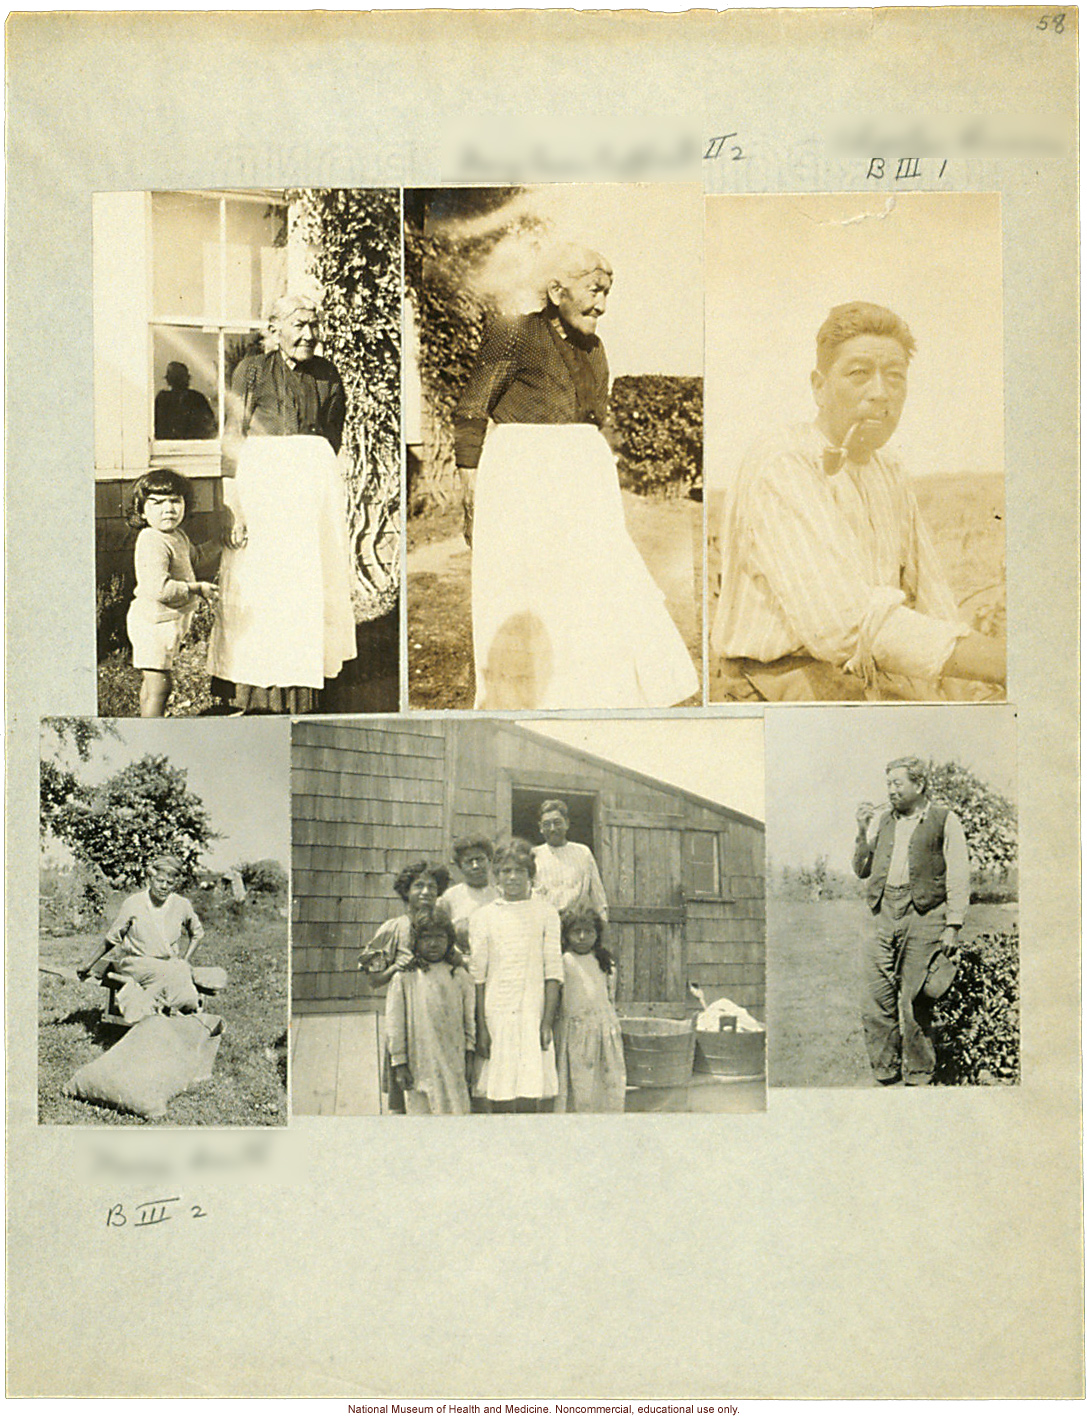 Anthropometric case materials on a Shinnecock Indian Family of Eastern Long Island (photographs, pedigree, field notes, and physical measurements)